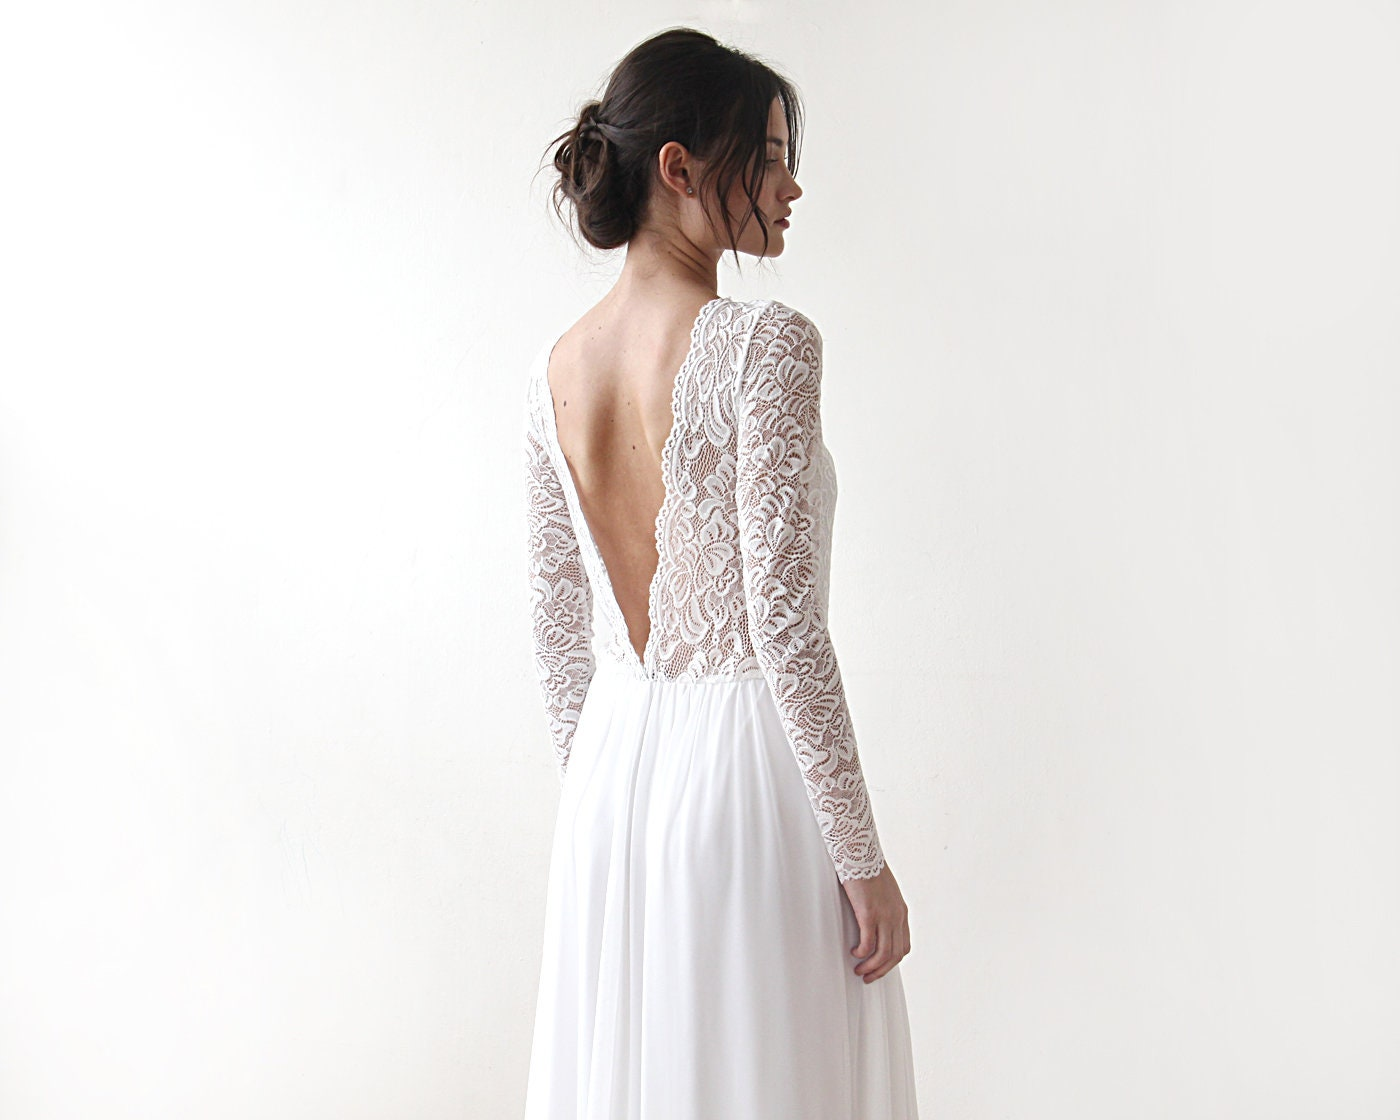 Ivory Crepe Open Back Wedding Dress And Handmade: Ivory Boho Open Back Dress Deep V Shape Bridal Gown Lace